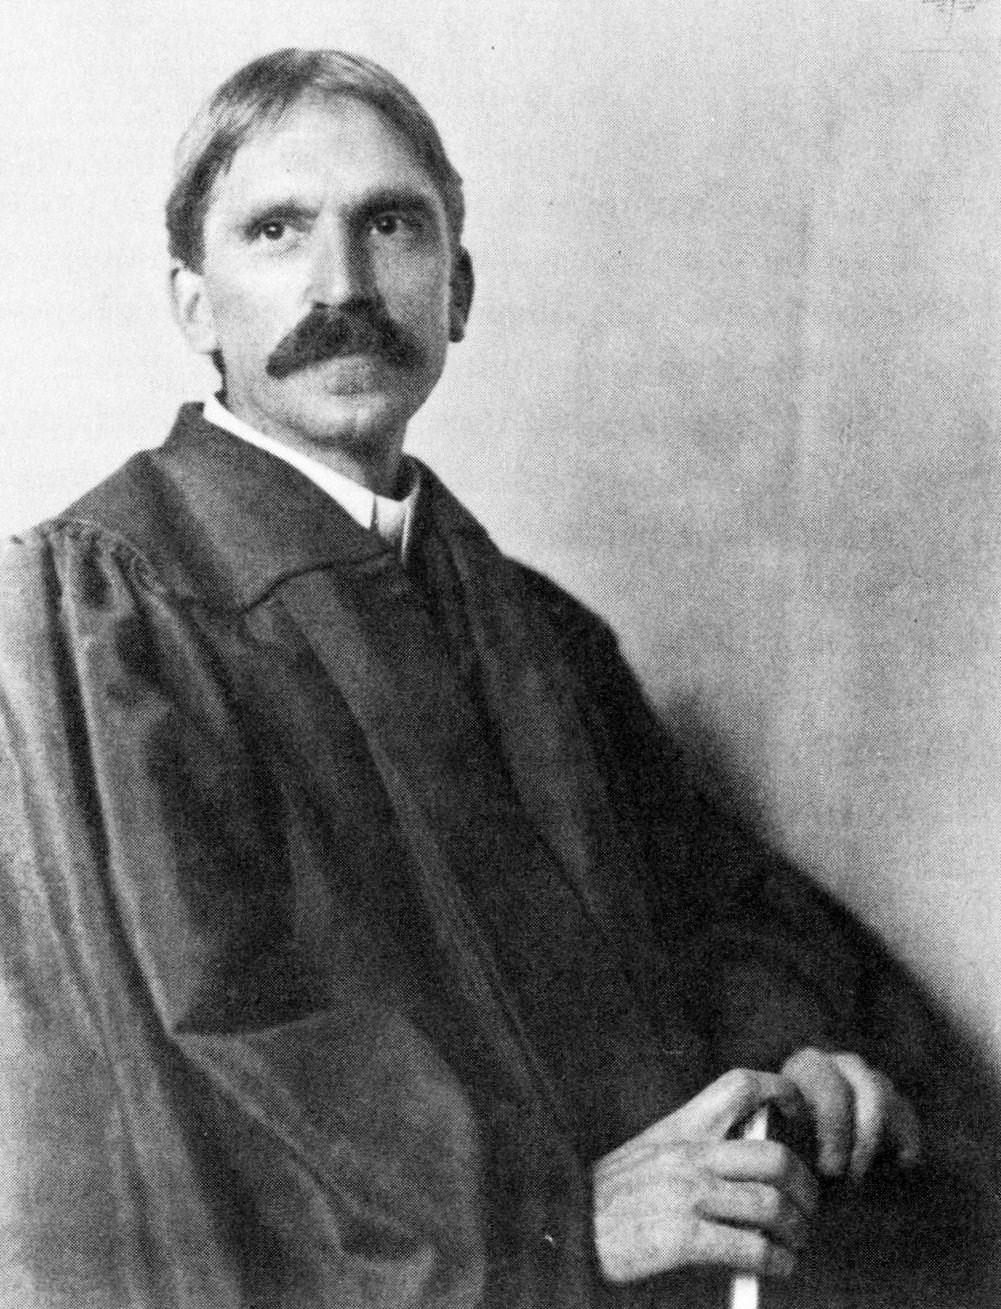 picture of john dewey from wikimedia